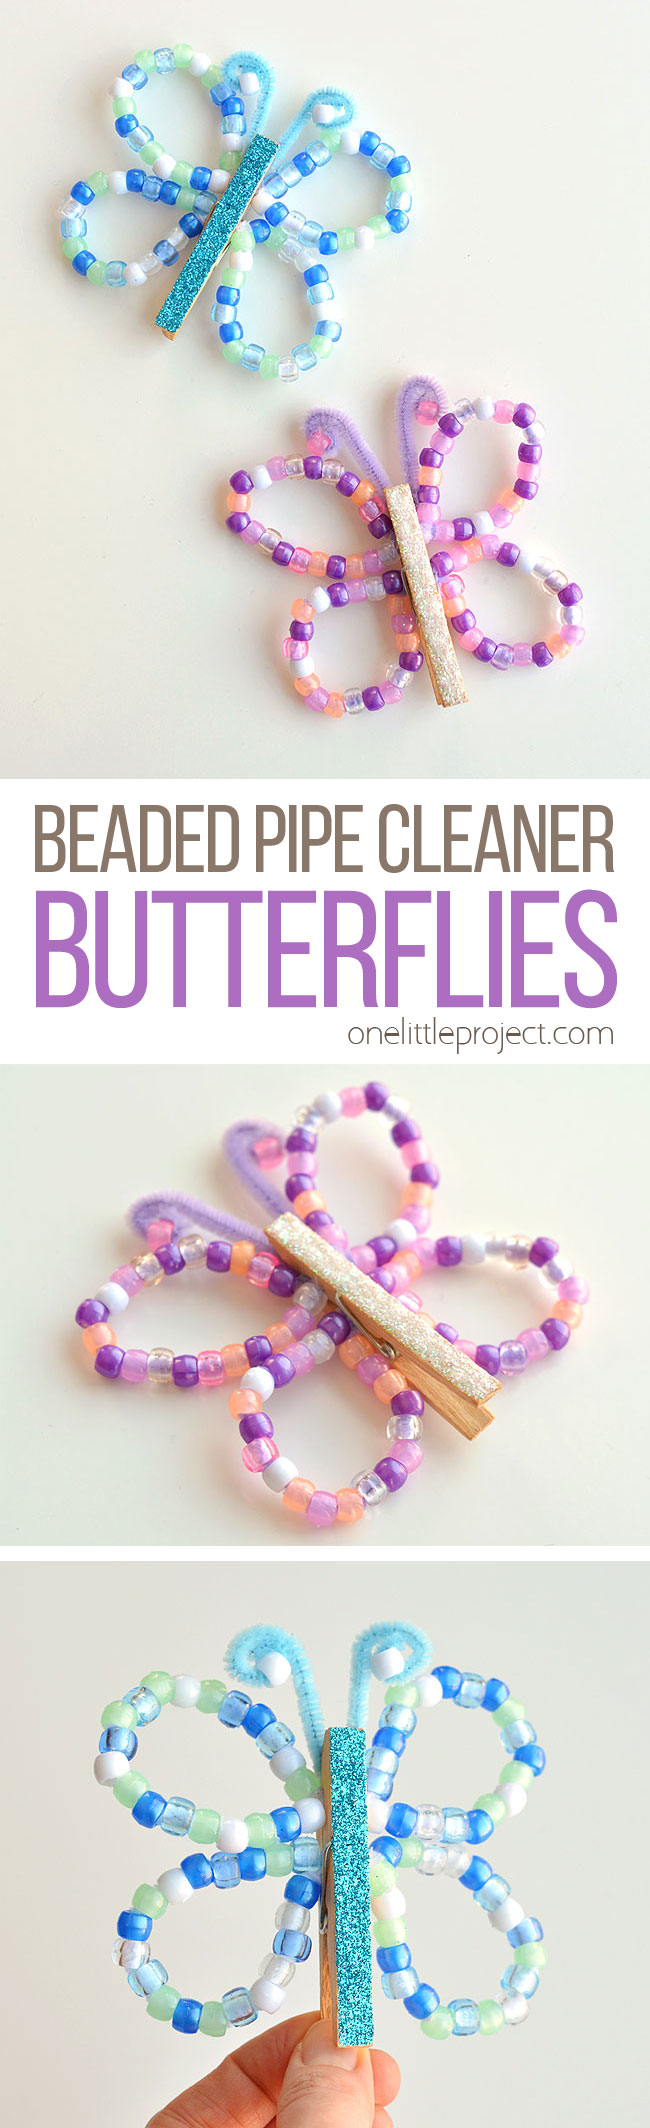 These beaded pipe cleaner butterflies are SO PRETTY and they're really easy to make! This is a great kids craft for spring or summer! Using pipe cleaners, pony beads and clothespins you can make beautiful butterflies in different colours! And best of all, the kids can play with them when they're done!